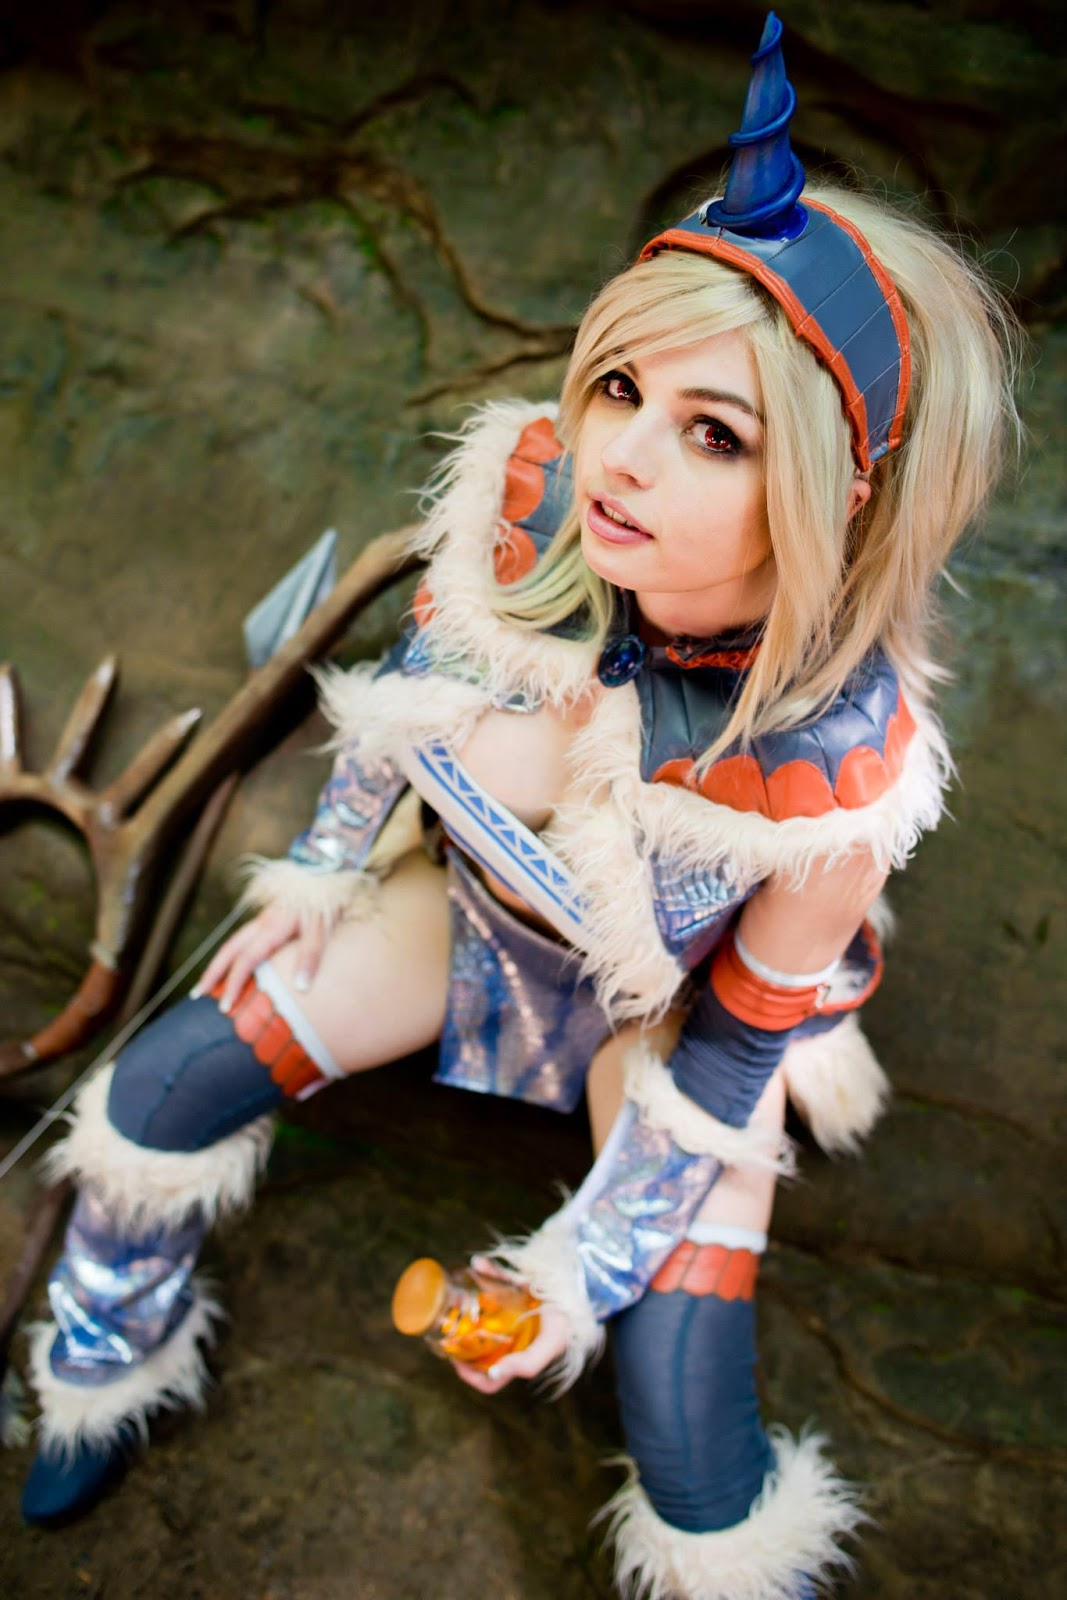 monster hunter kirin armor cosplay.jpg